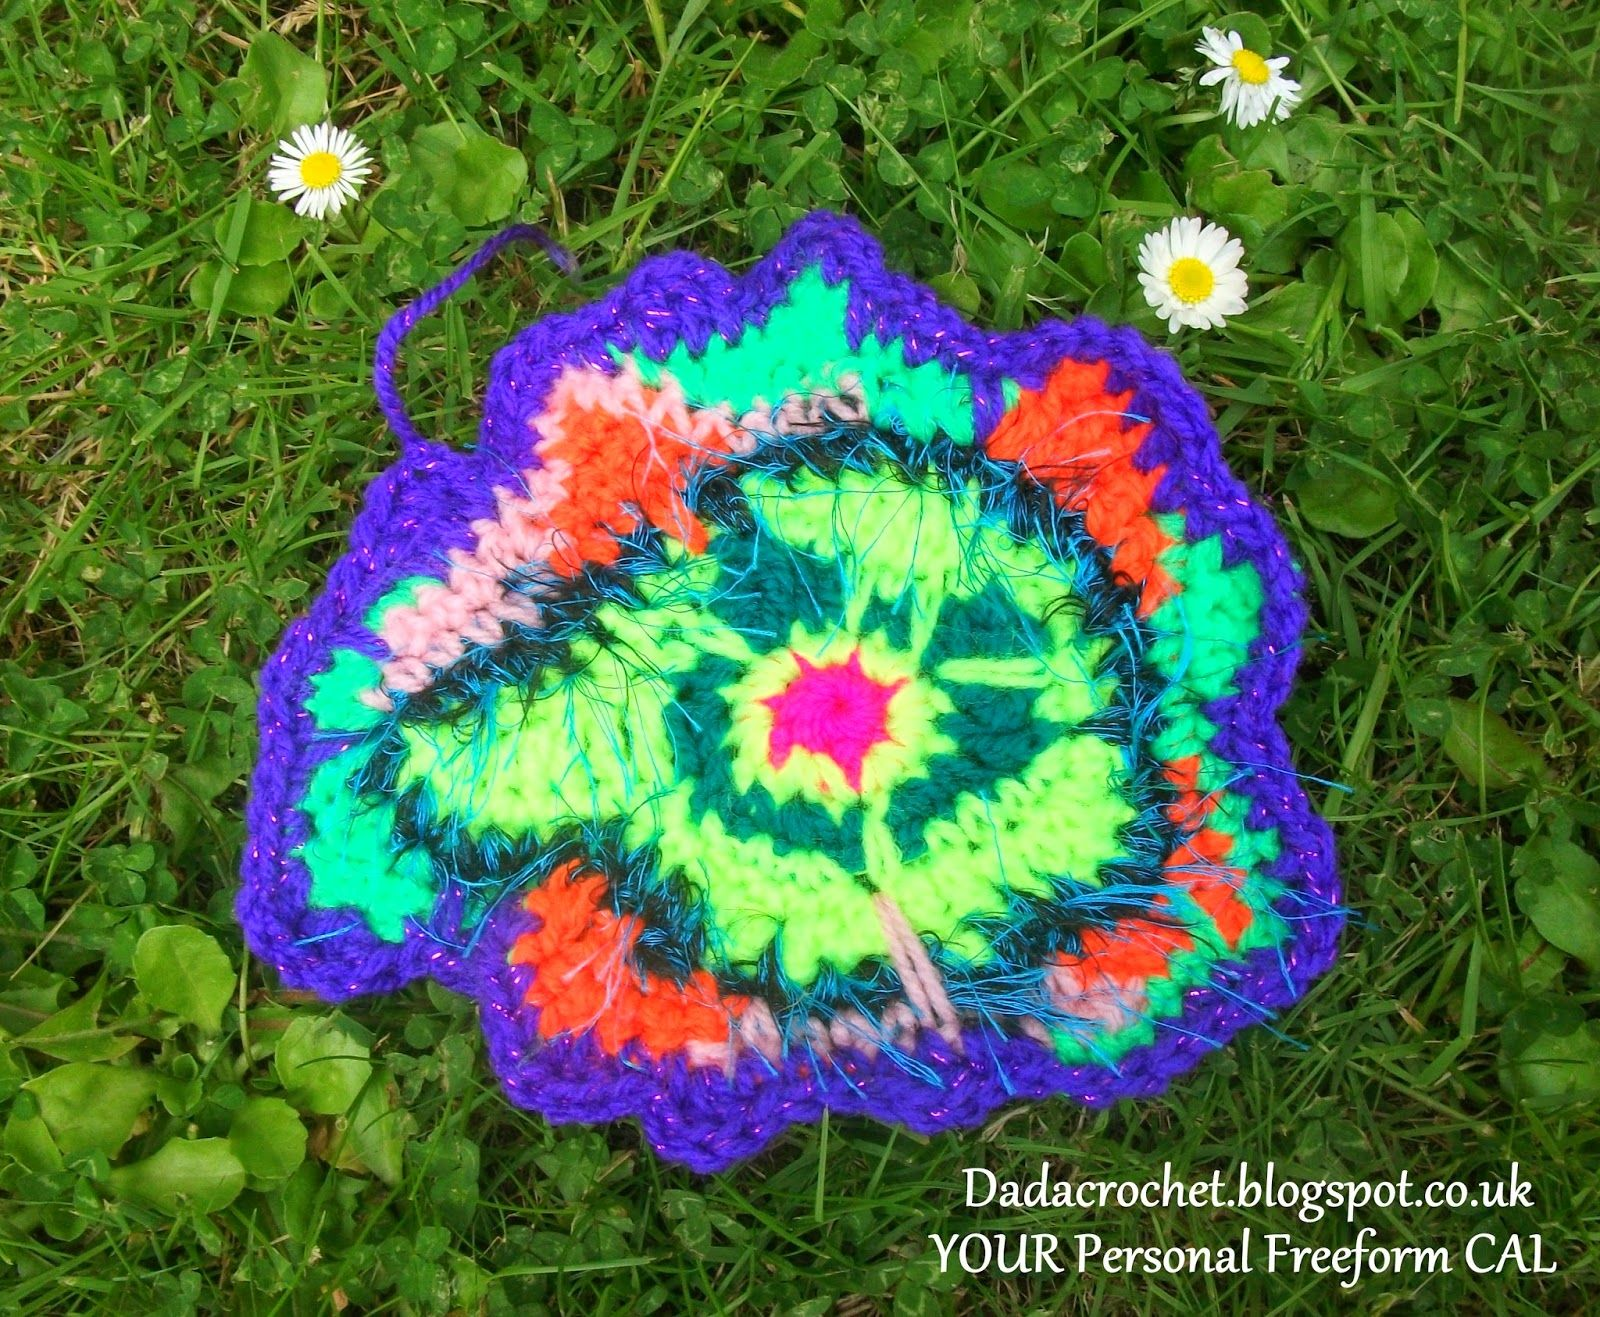 Excellent exercise to get started with freeform: Dada Neon Crochet: YOUR Personal Freeform CAL! - Week 1